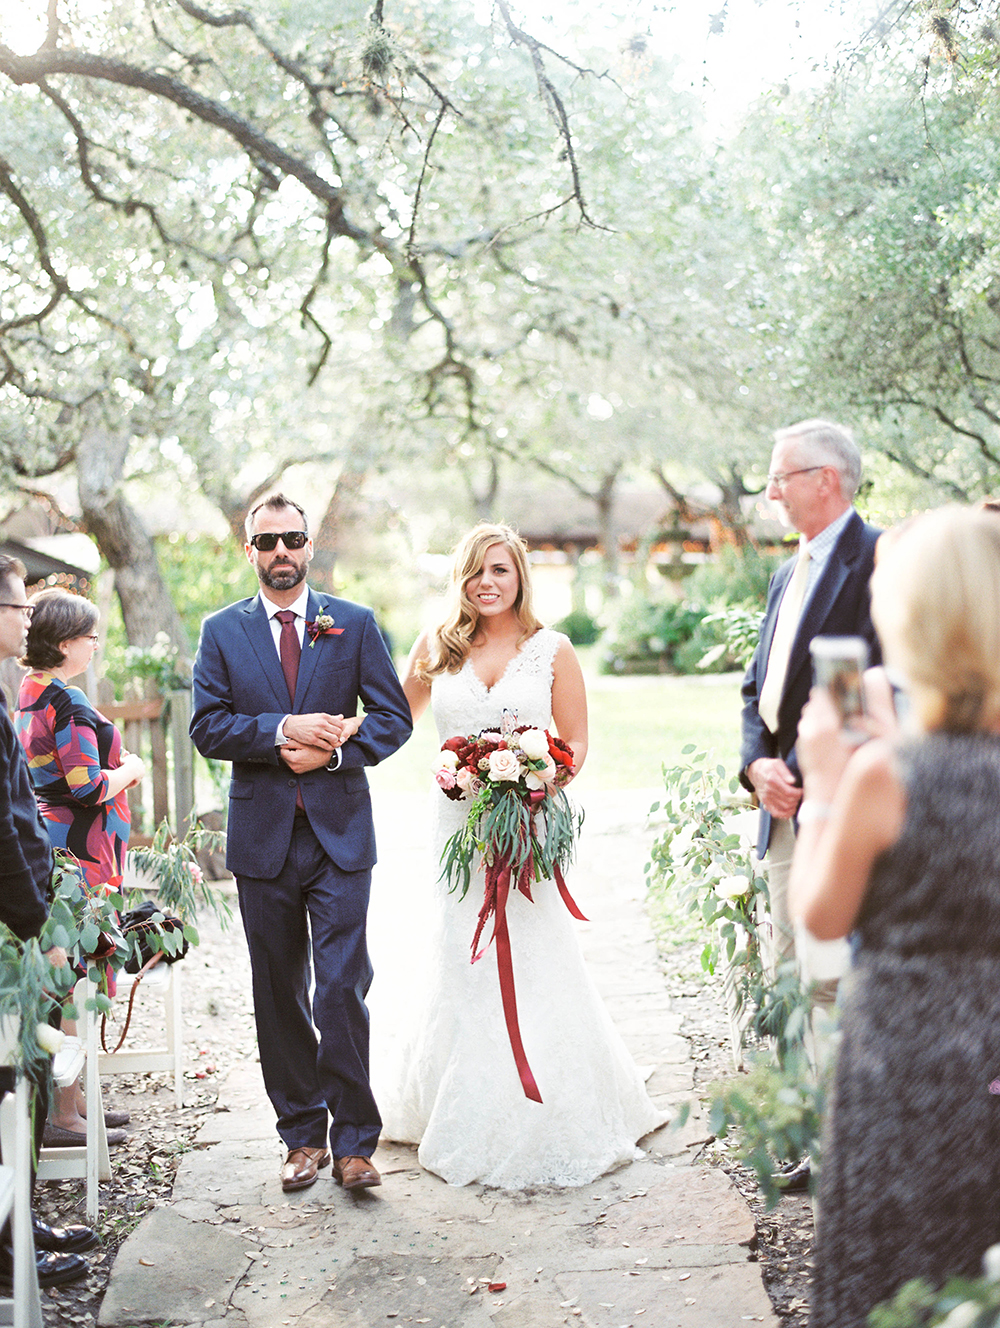 ceremony processionals - photo by Honey Gem Creative http://ruffledblog.com/hill-country-garden-wedding